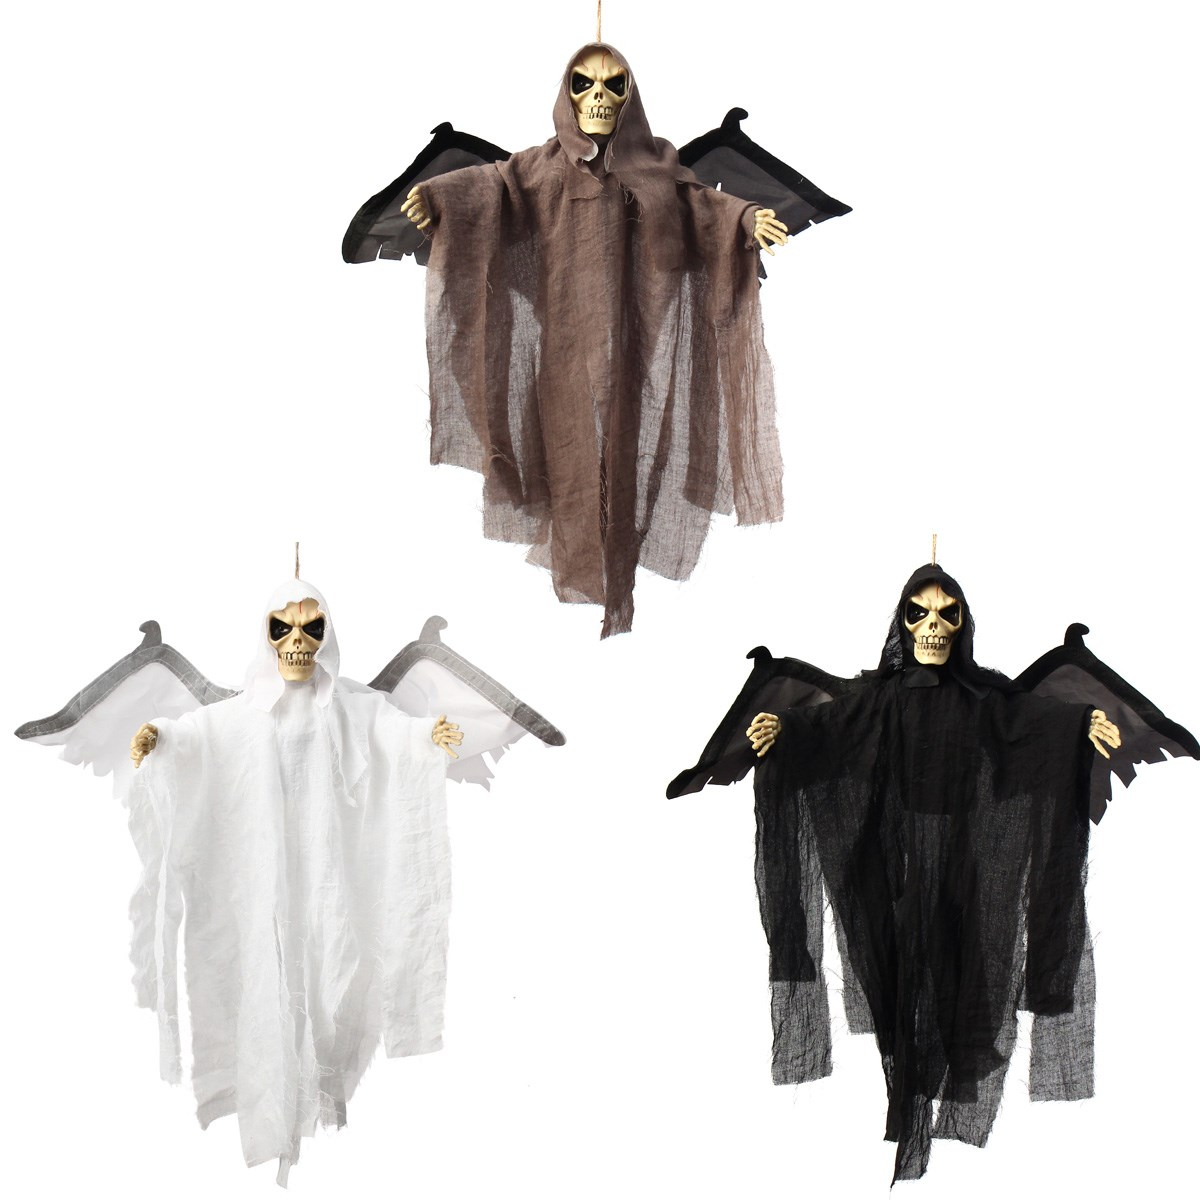 Diy halloween ghost3 - Hanging Halloween Ghost Witch Scary Haunted Props Voice Control Skull Wing Cloak Pendant Halloween Party Events